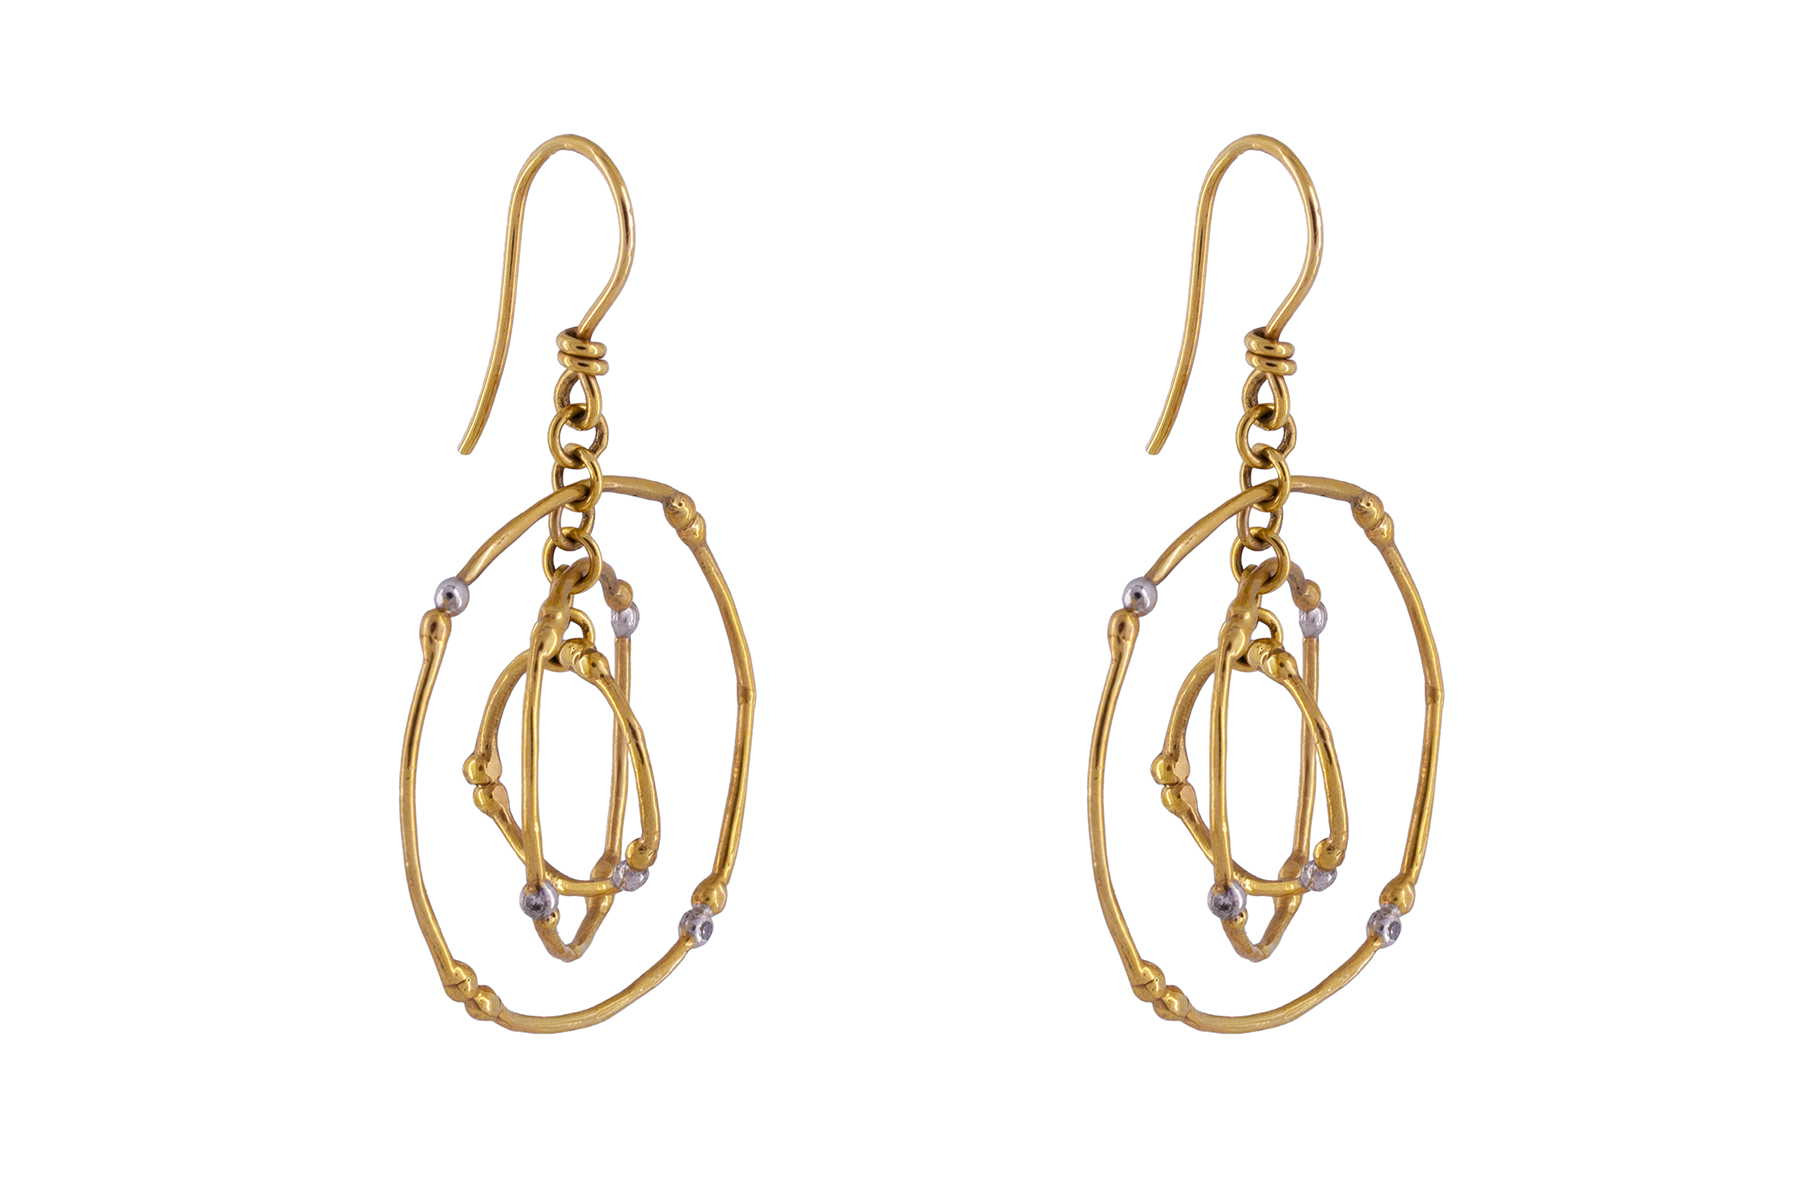 Twiggy Earrings in solid 9ct Yellow Gold with Diamonds